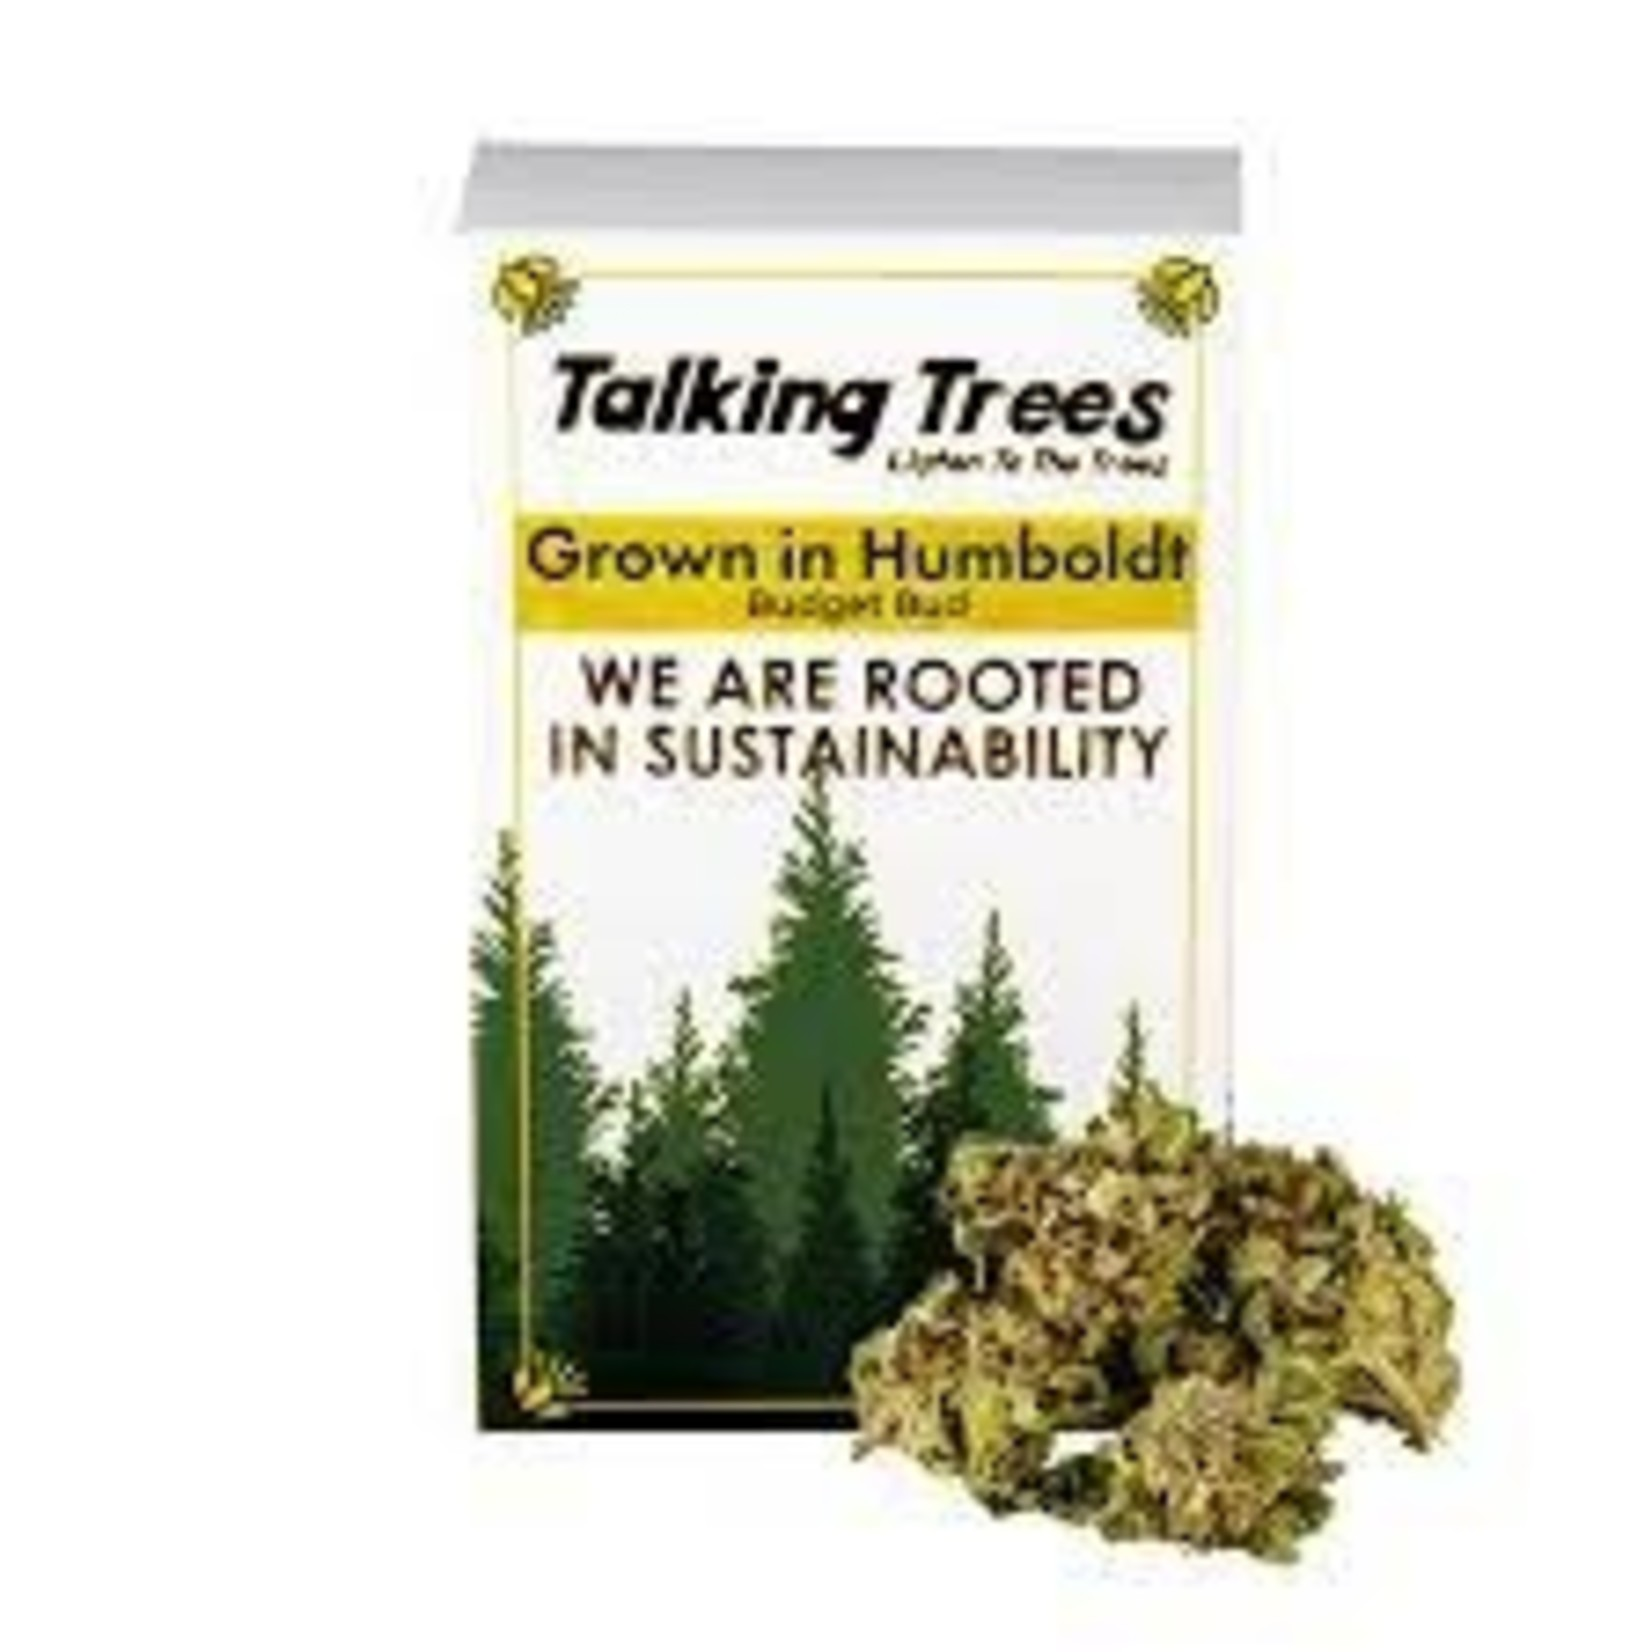 Talking Trees / Zurpz